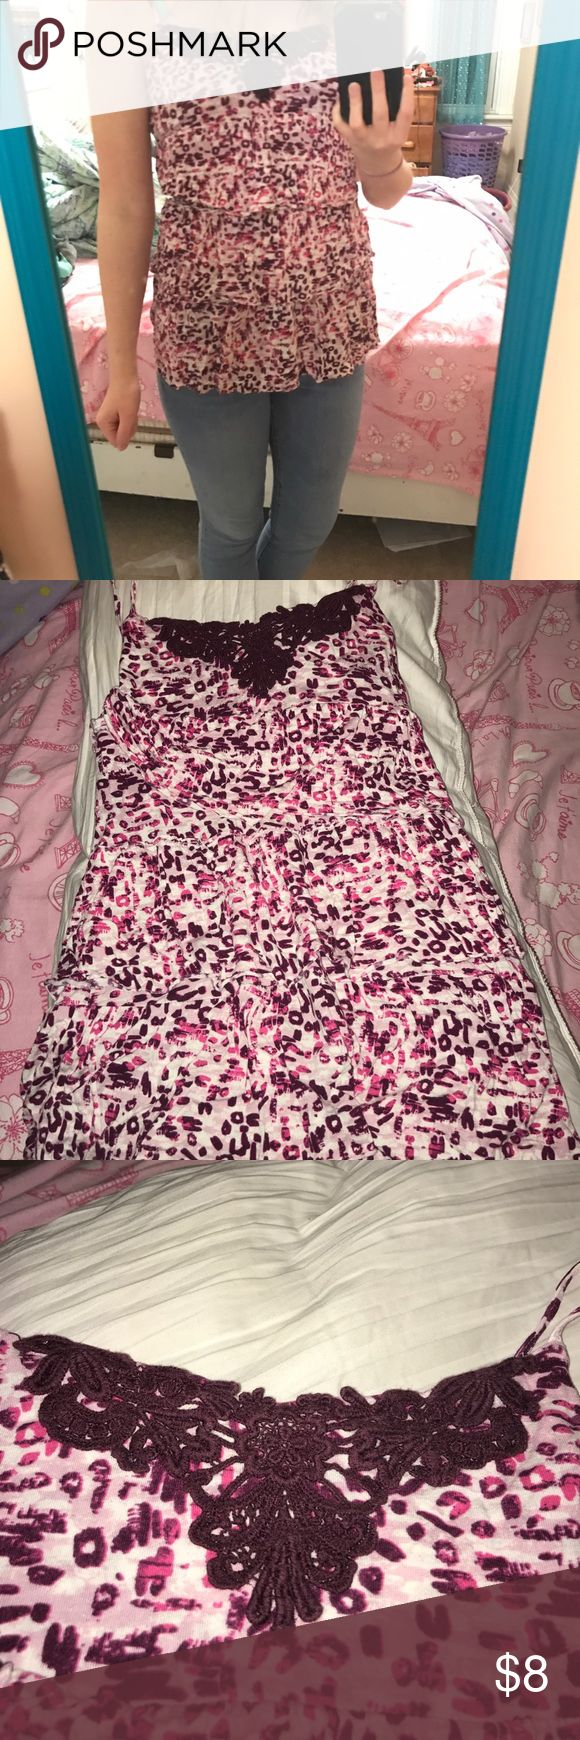 Multilayer cheetah print spaghetti strap tank top Spaghetti strap tank top with beautiful shades of purples and pinks. Several ruffelry layers. Cheetah print with a cute knit pattern at the top. Only worn once to a graduation. Mudd Tops Tank Tops